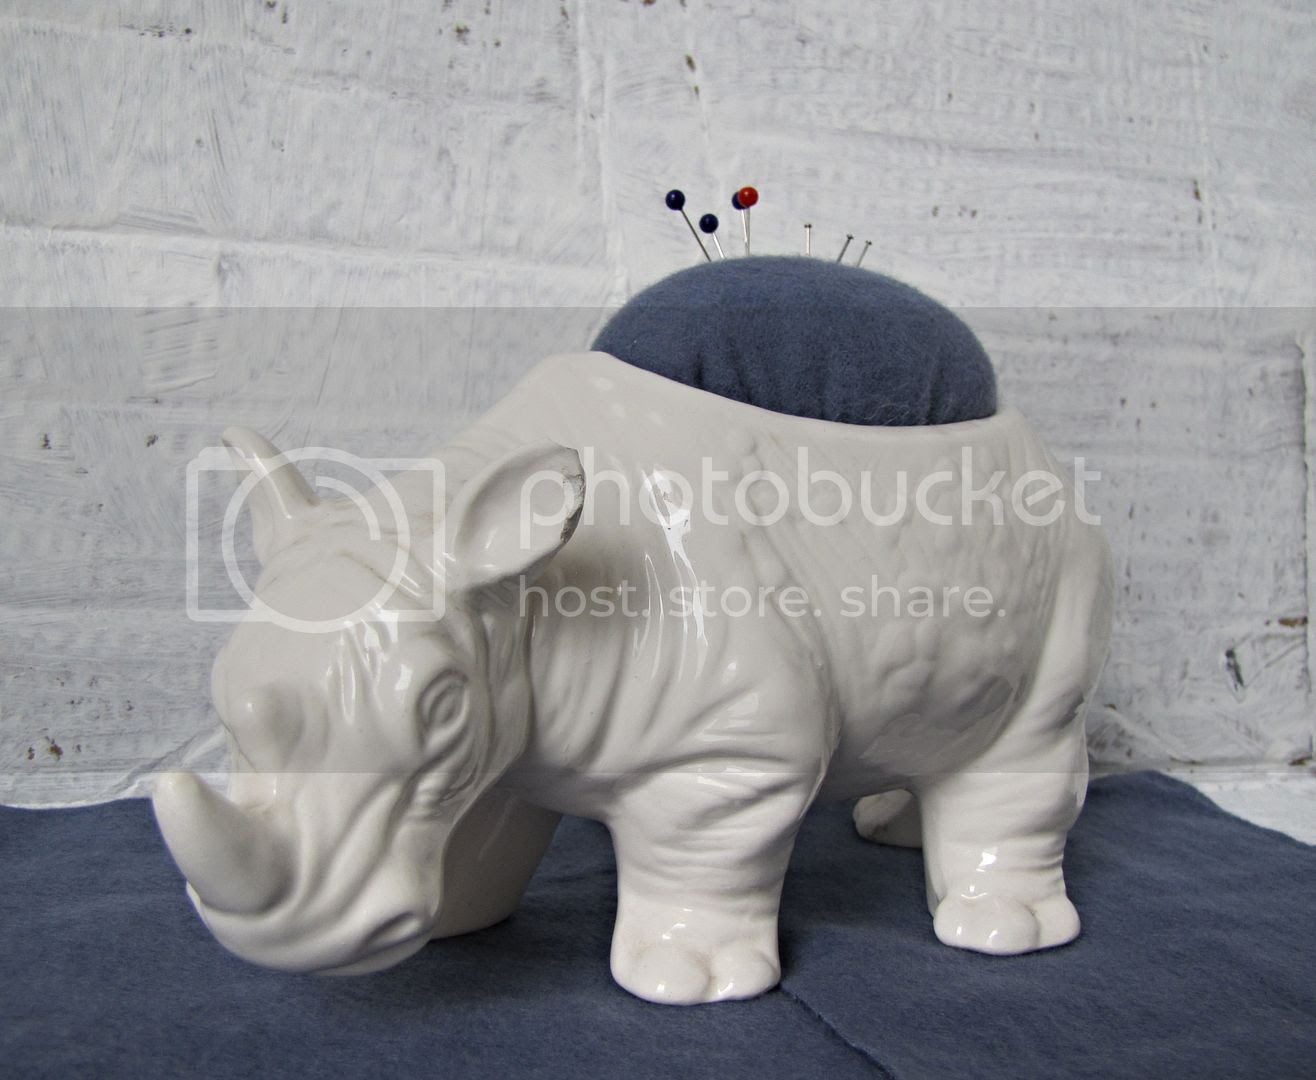 rhino pincushion from floral container - Indietutes.blogspot.com photo 9d98a044-8aad-4333-8cd8-0719e5e1188d.jpg